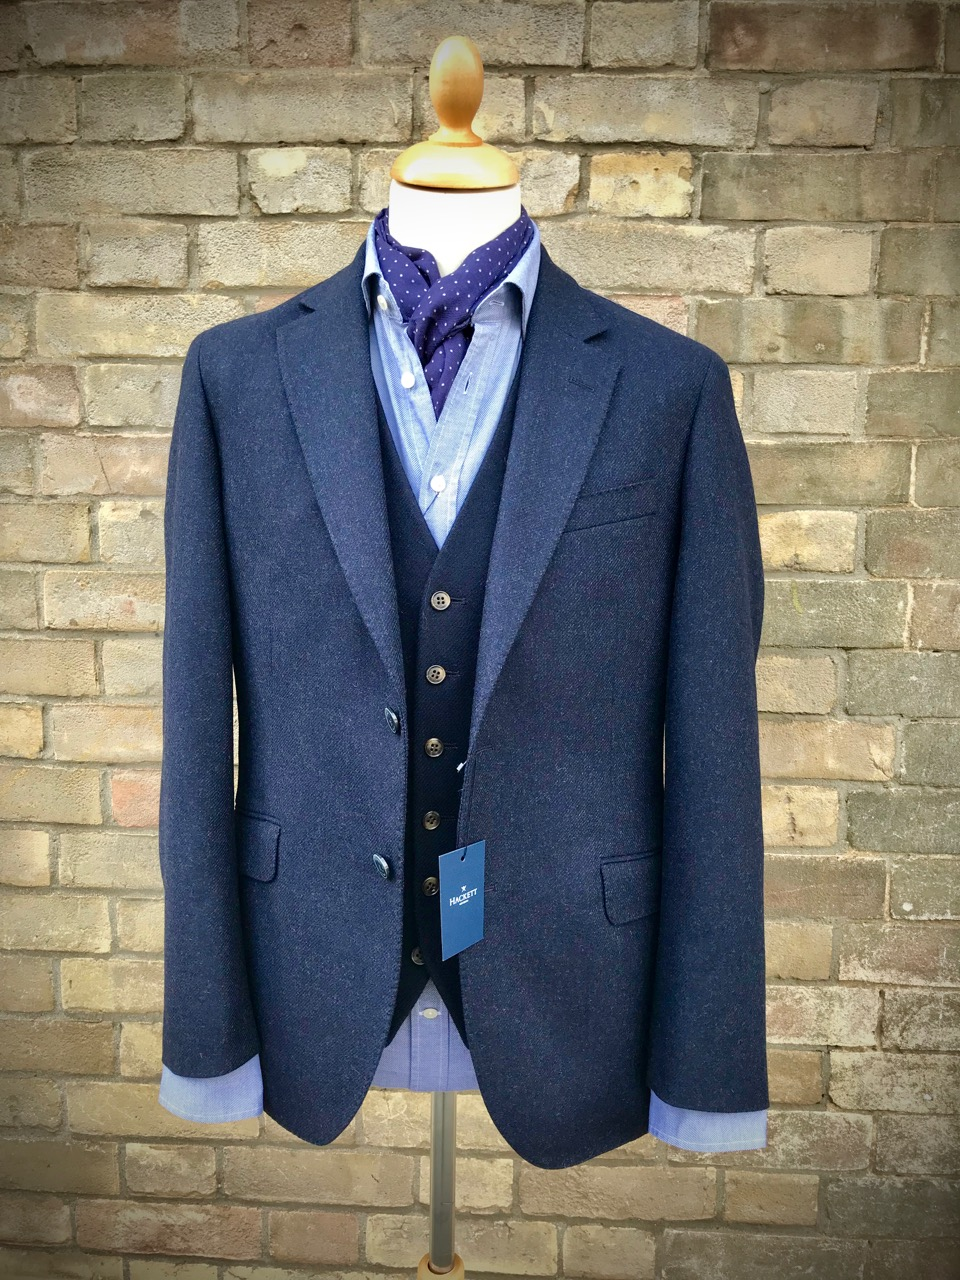 Hackett Jacket, Thomas Oliver waistcoat, Hackett shirt and scarf.